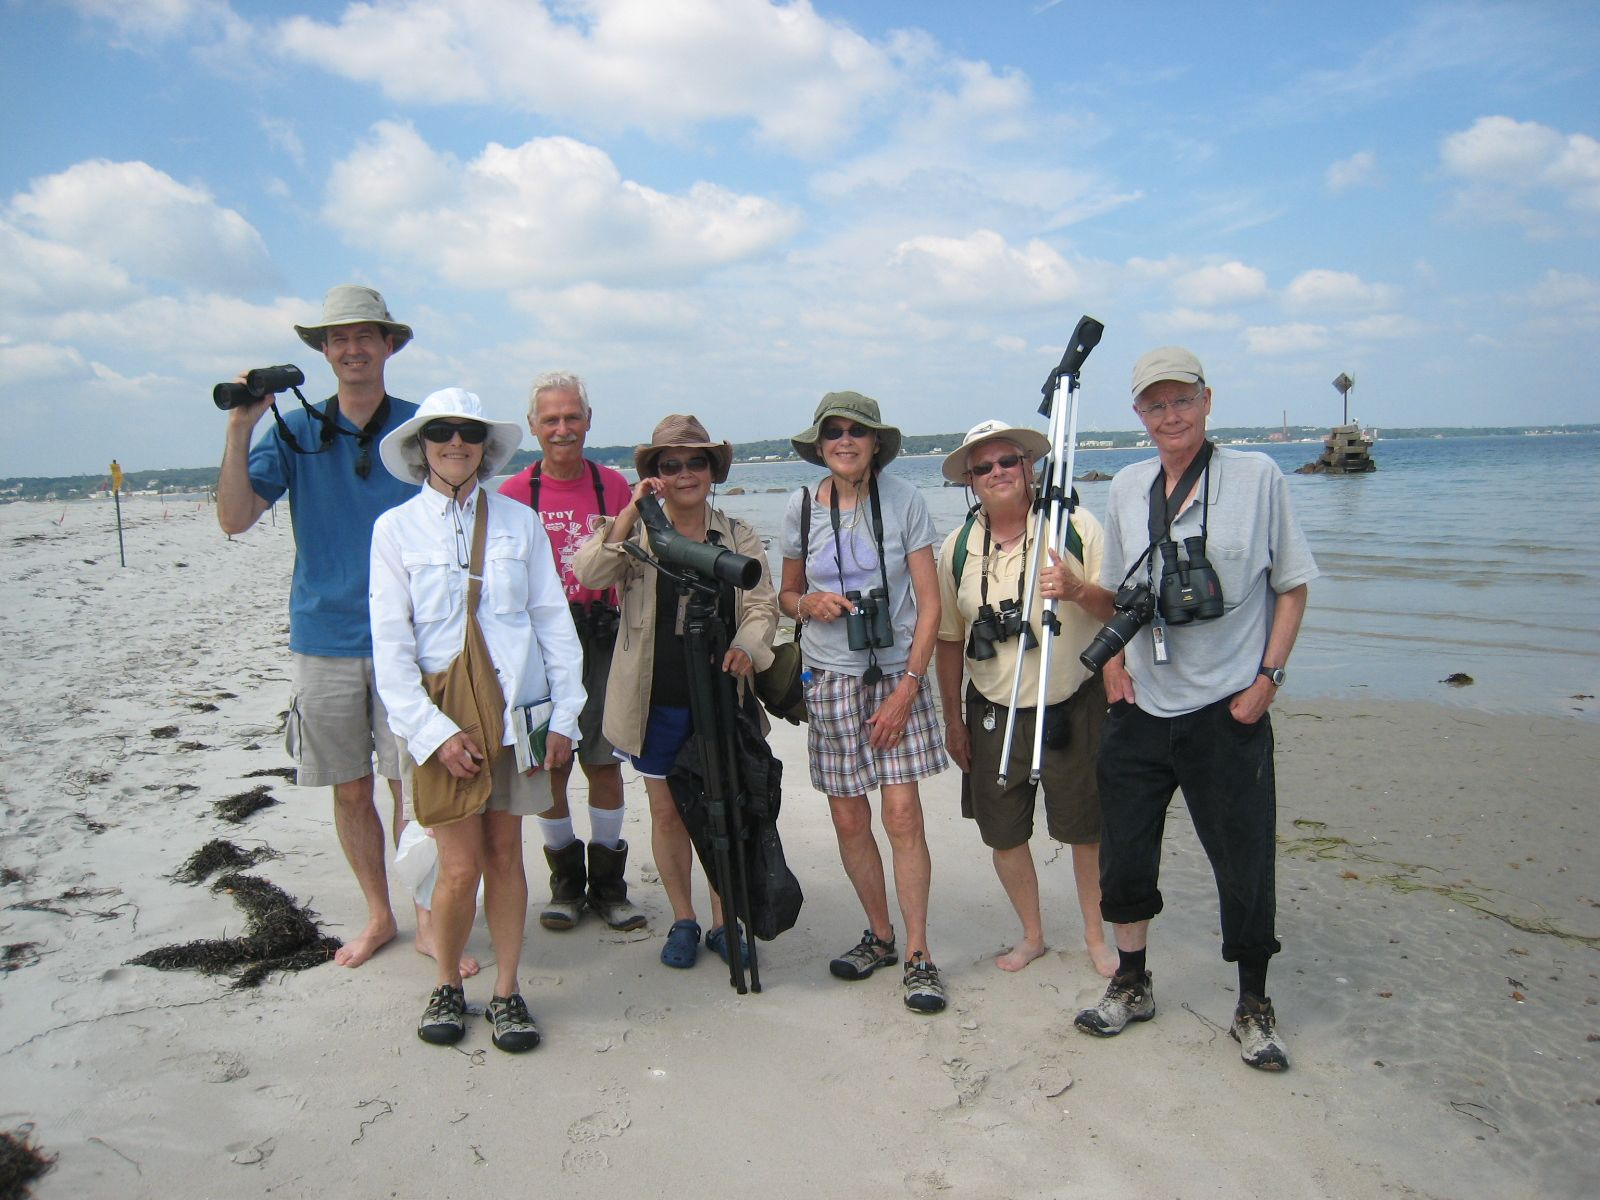 Birding on the beach with the Bird Brains